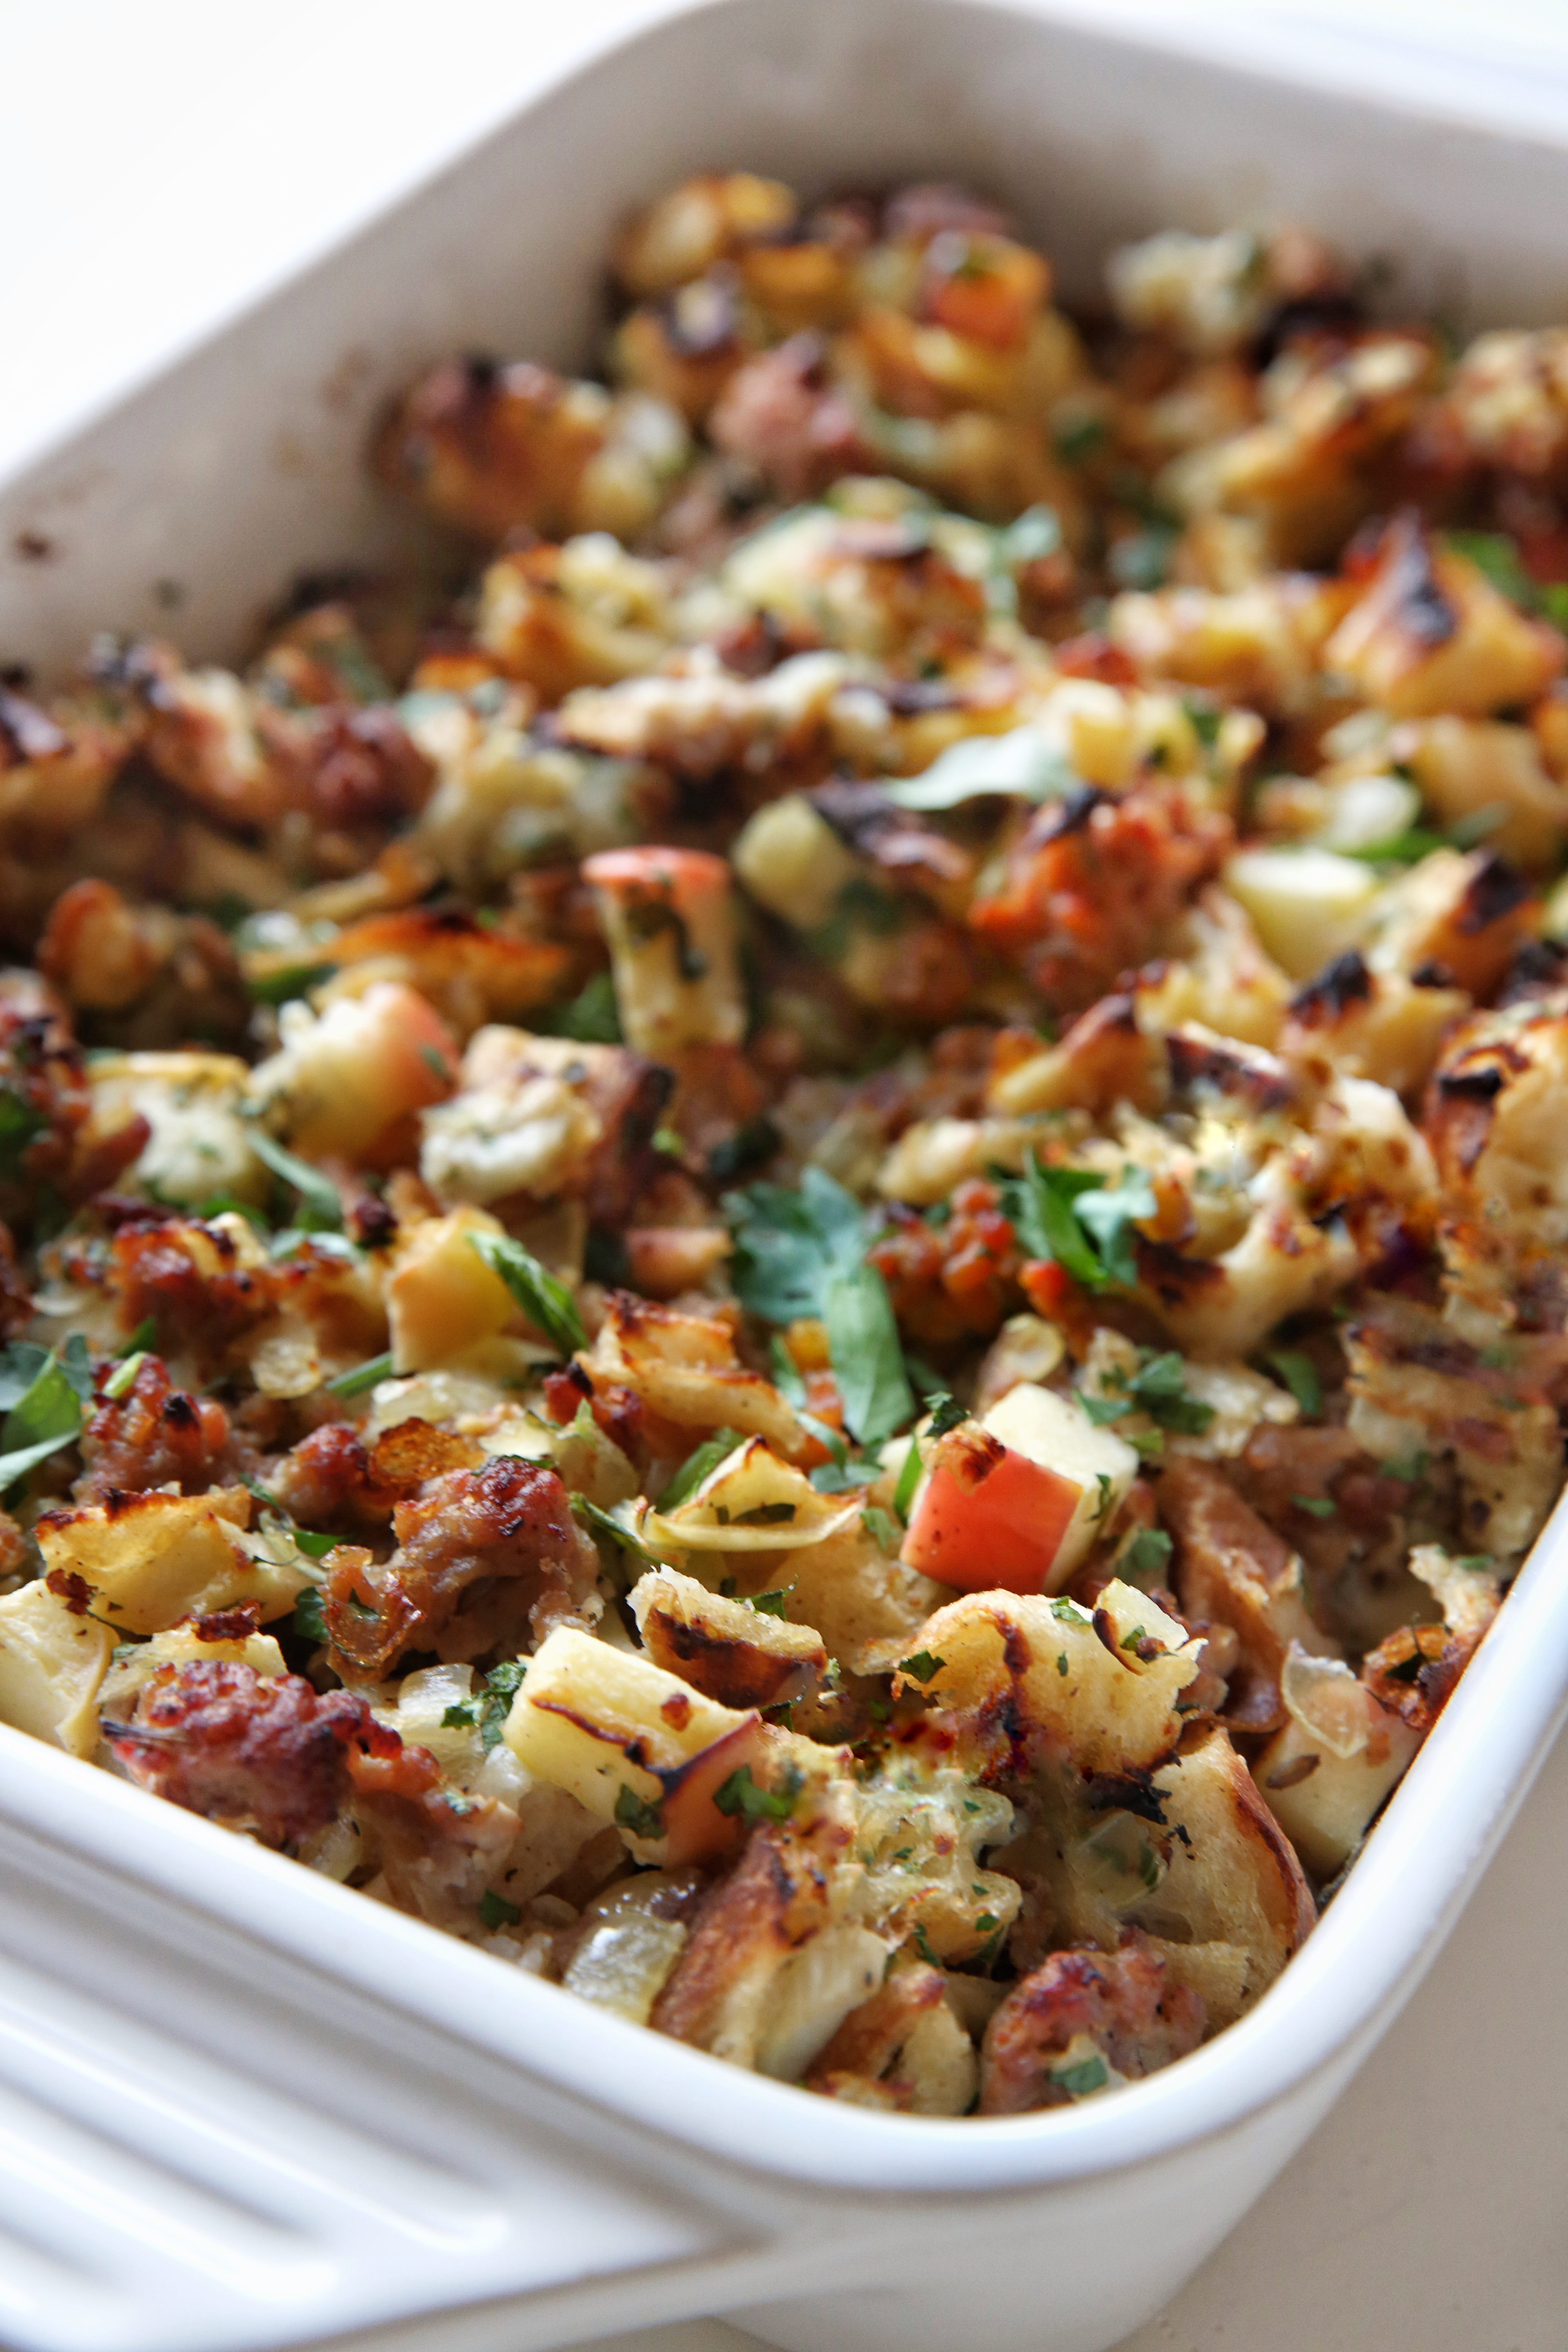 stuffing recipe thanksgiving apple recipes easy delish awesome bread focaccia sausage turkey dressing homemade food fall visit